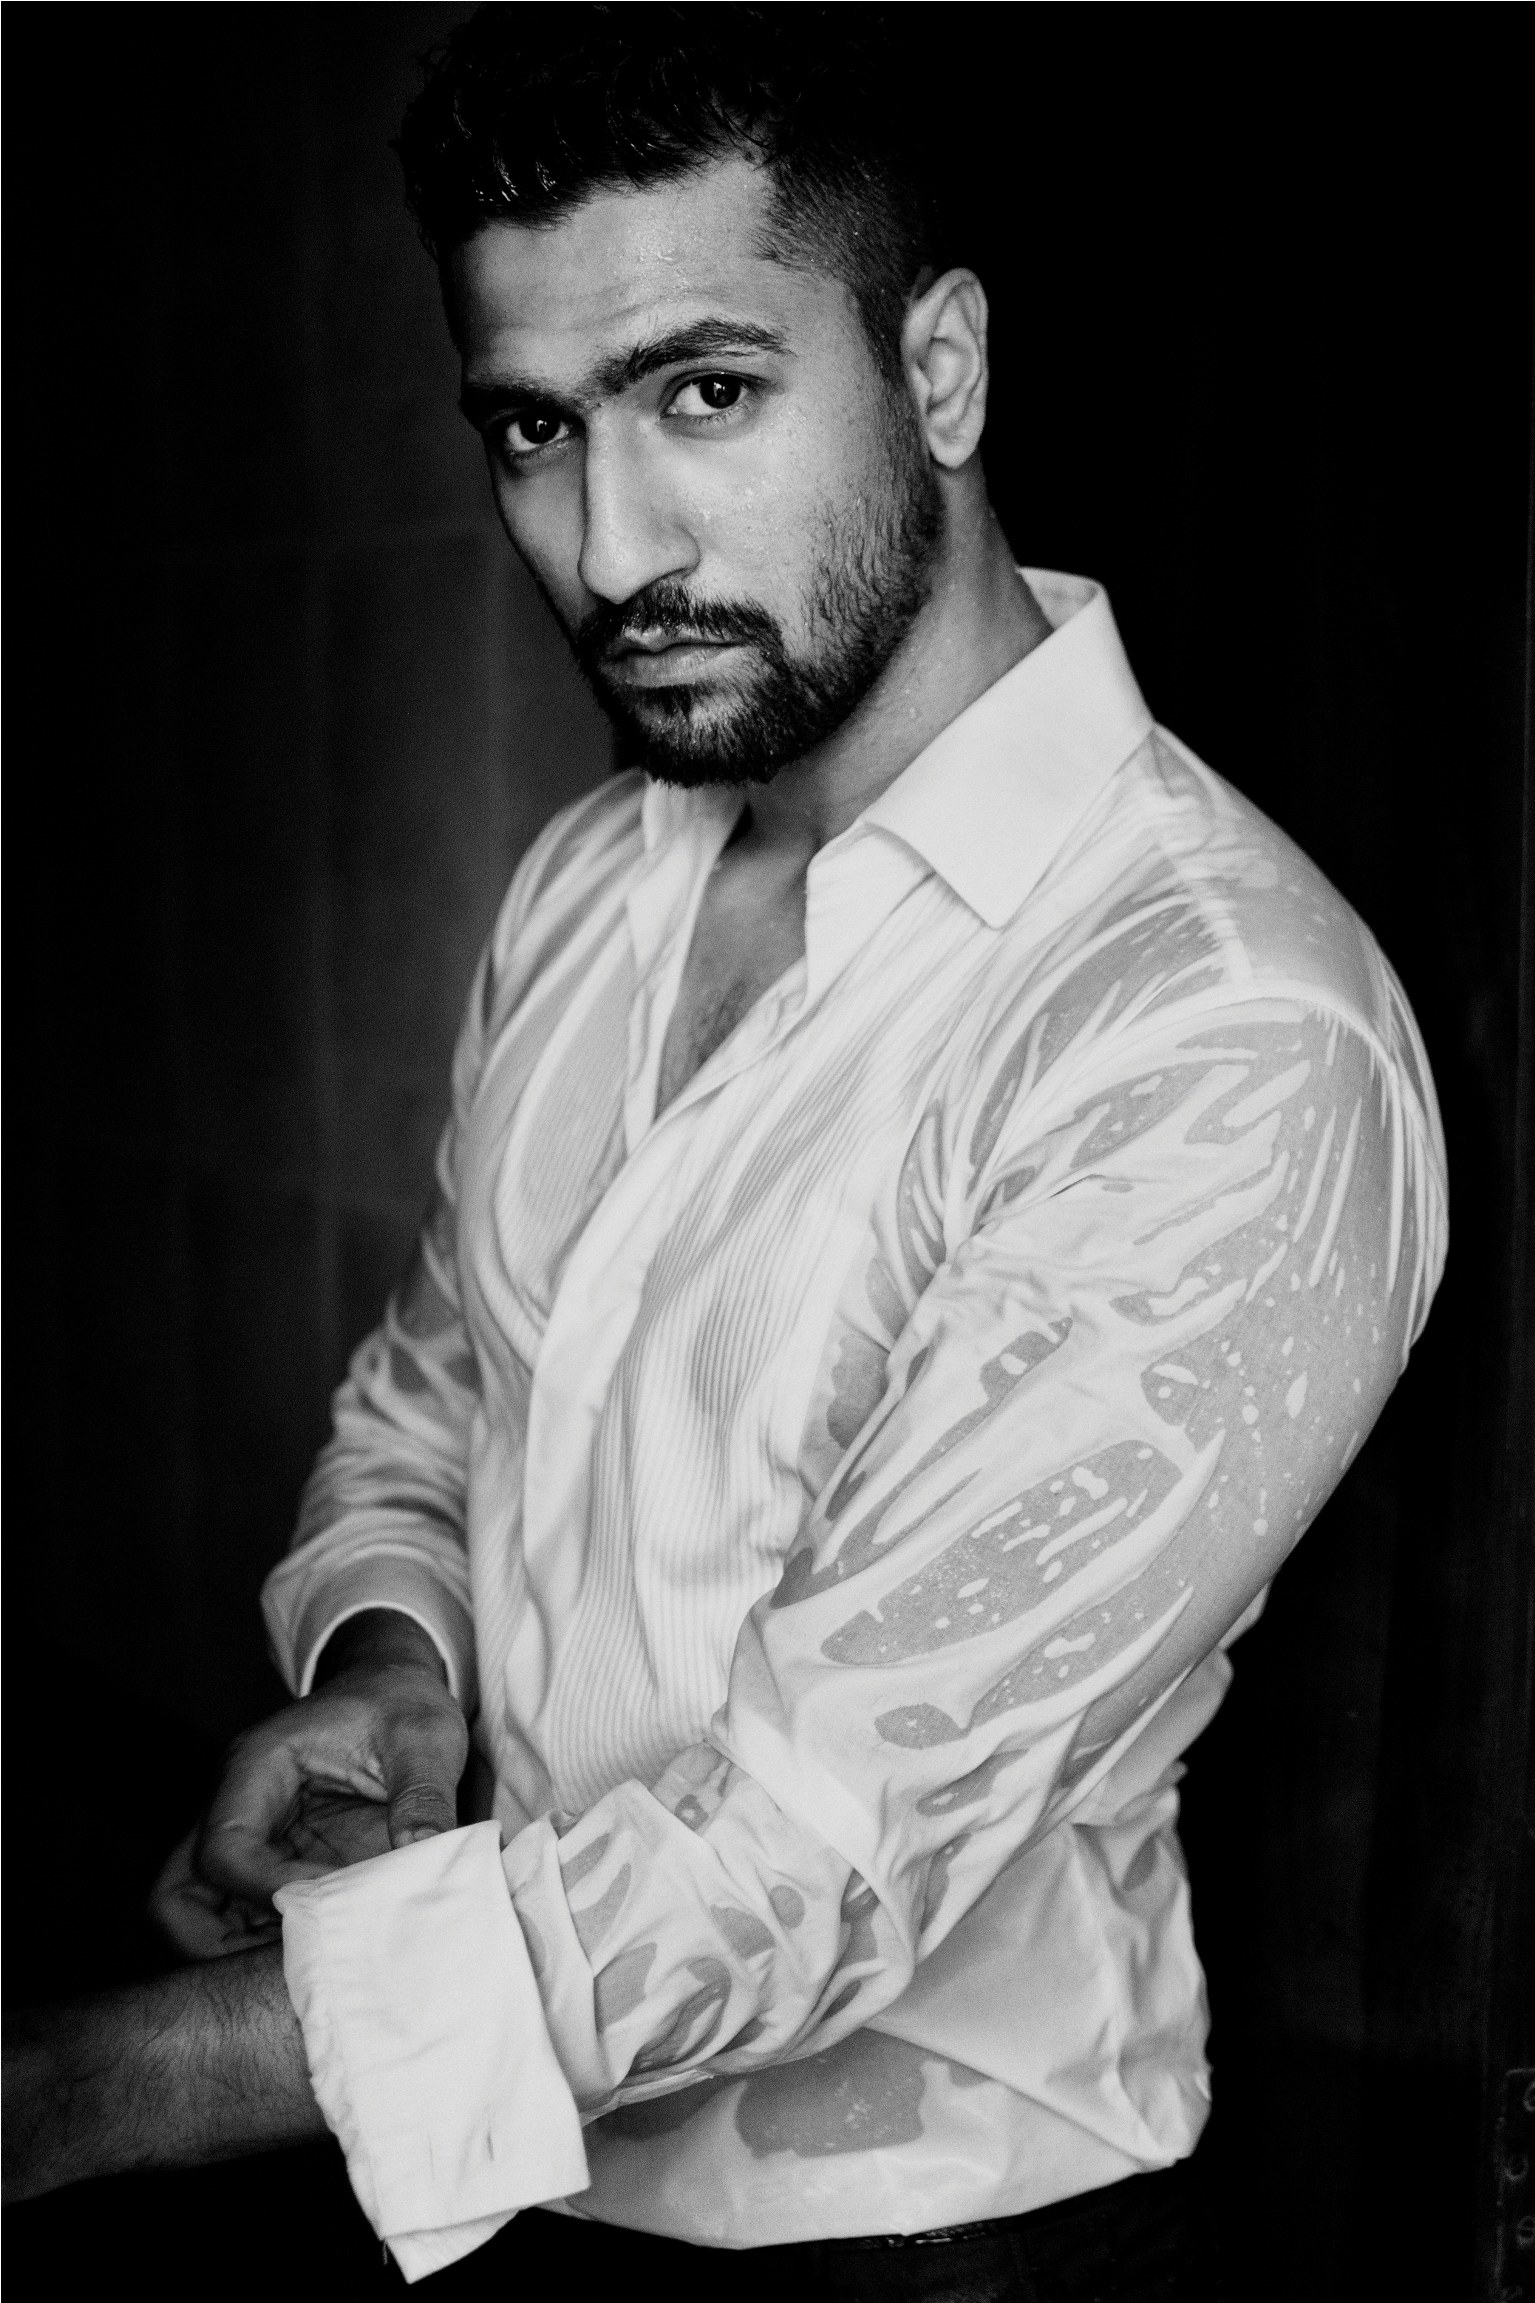 Photos Of Vicky Kaushal And His New Abs Thatll Make You